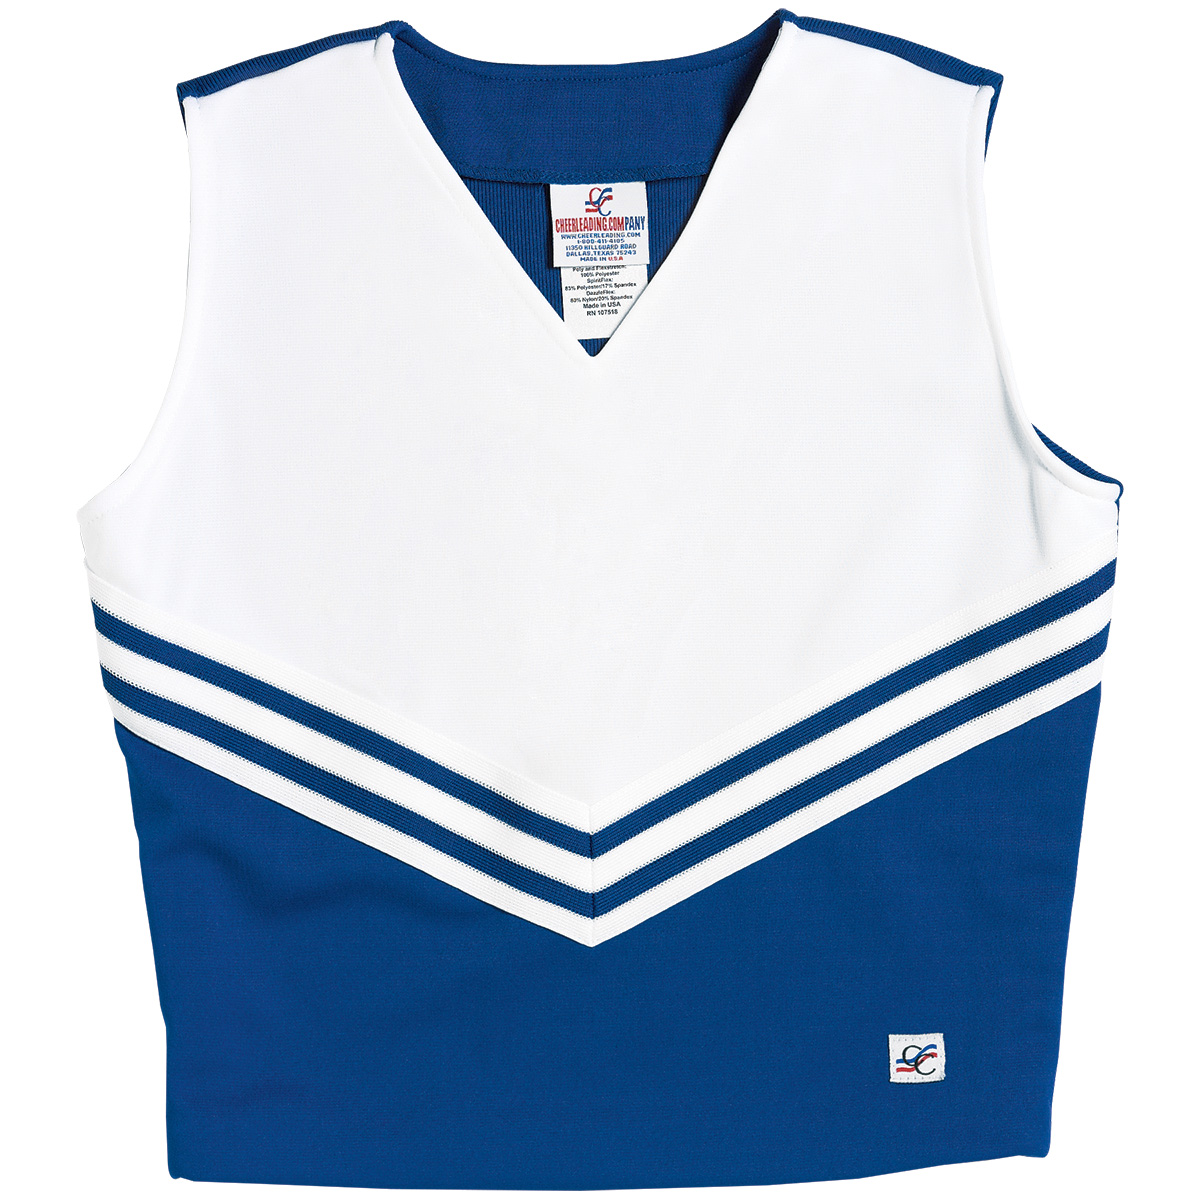 Cheerleading Company - Quality Cheerleading Uniforms with Options